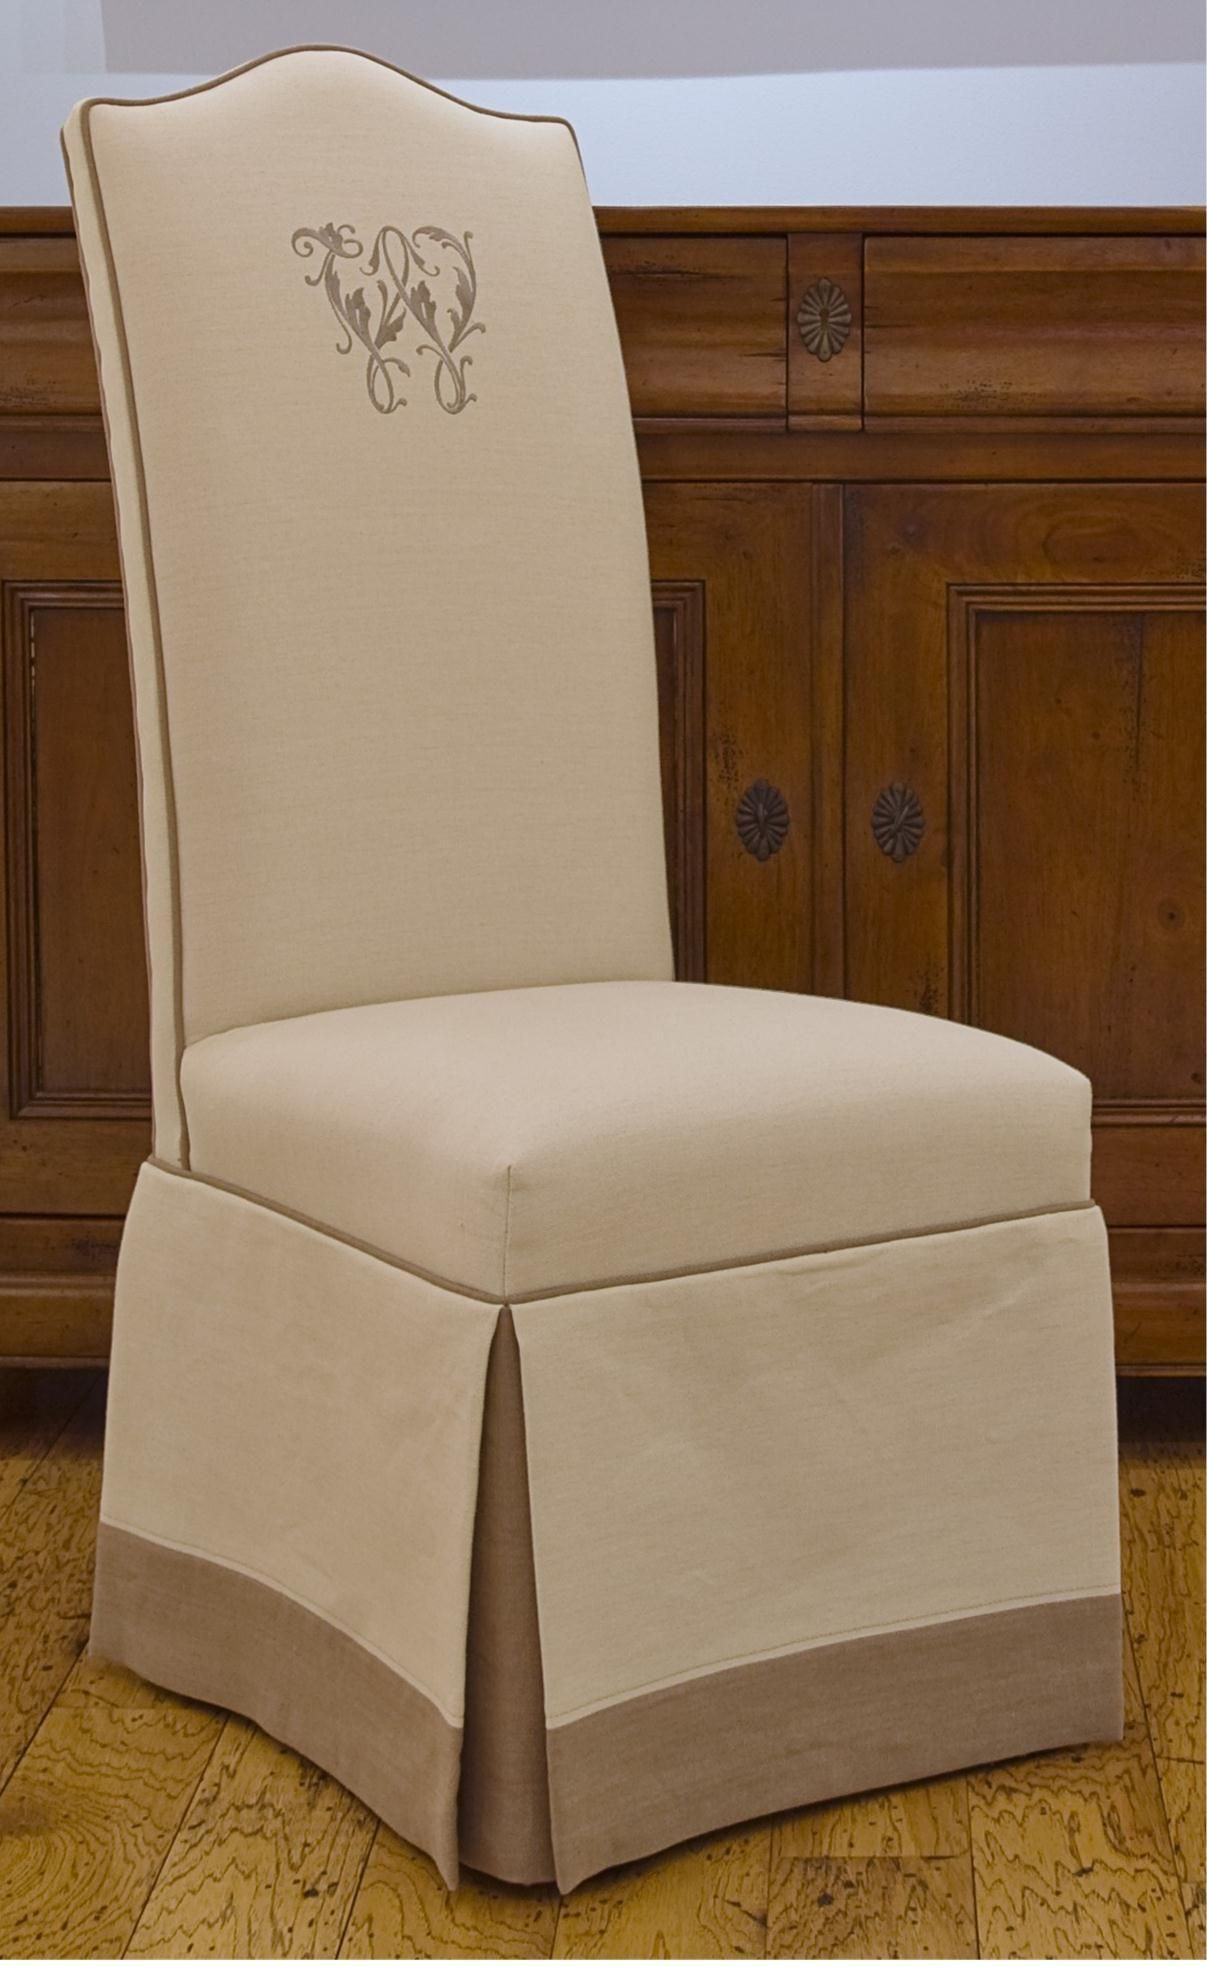 Monogrammed Upholstered Chairs | ... Skirt, Double Welt, And Band At The